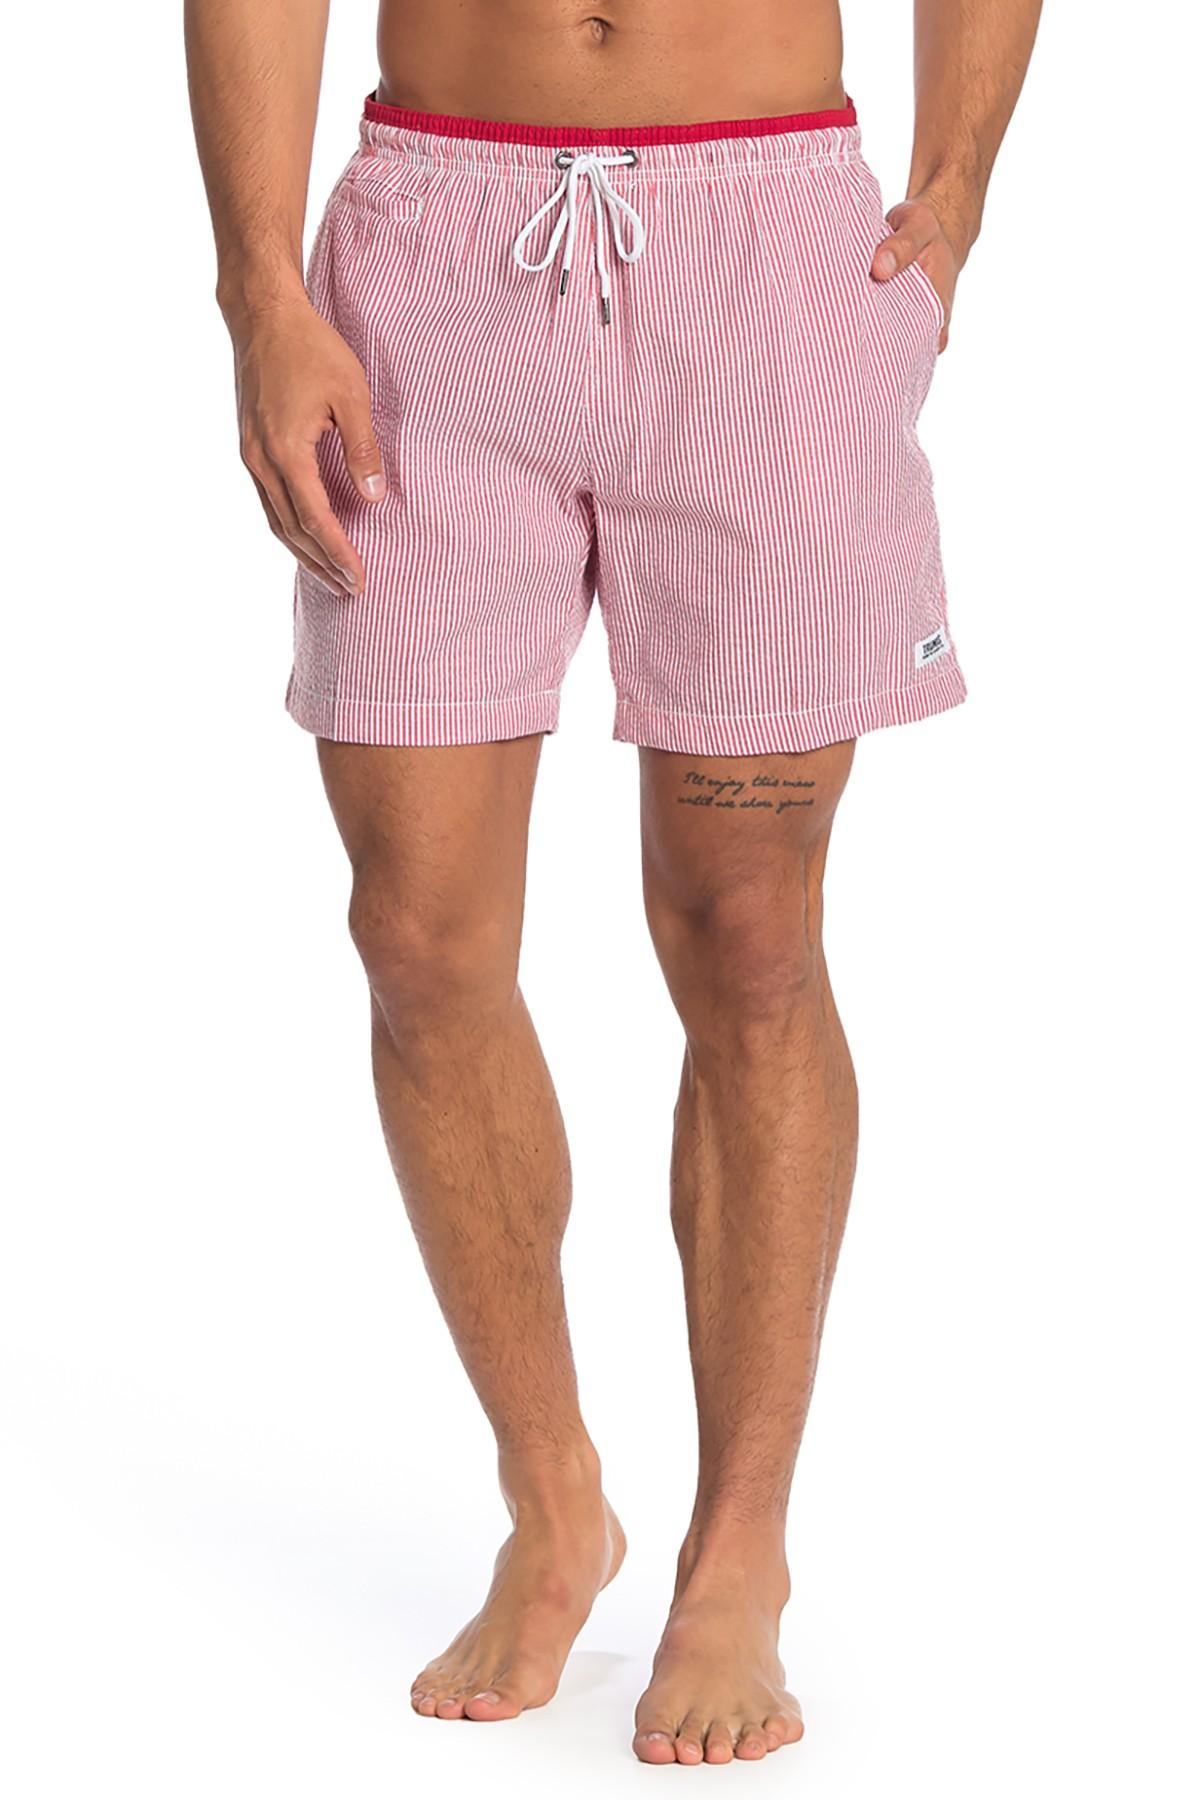 398125fb59690 TRUNKS SURF AND SWIM CO - Pink Premium Striped Sano Swim Shorts for Men -  Lyst. View fullscreen